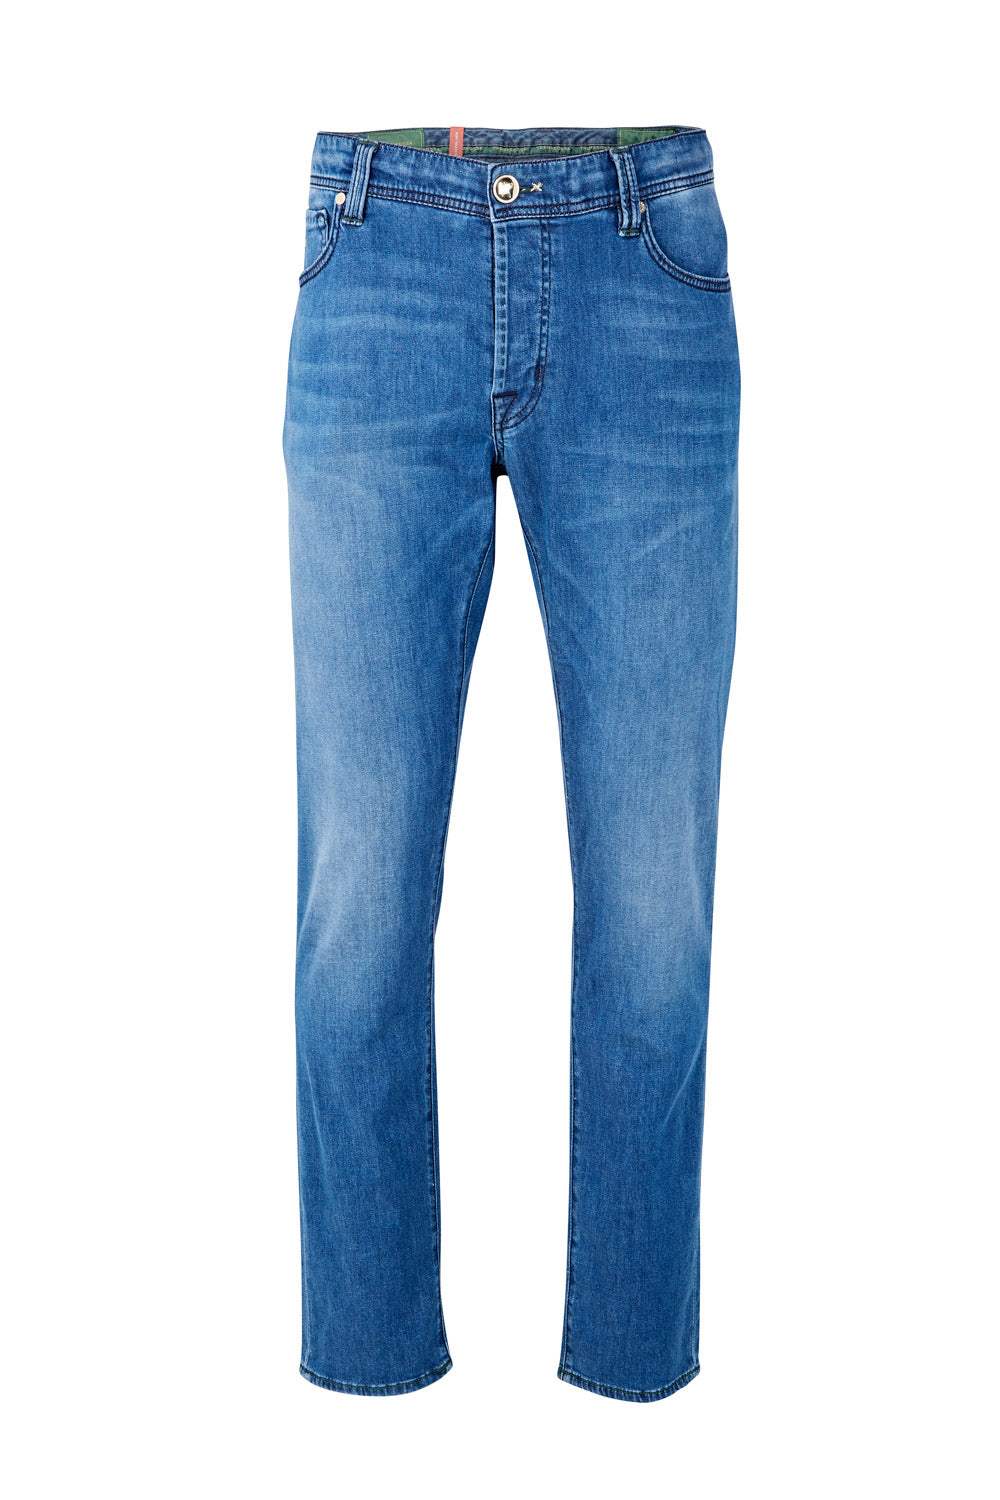 Tramarossa Leonardo Luxury Soft Touch Silk Mix Jean (Blue)